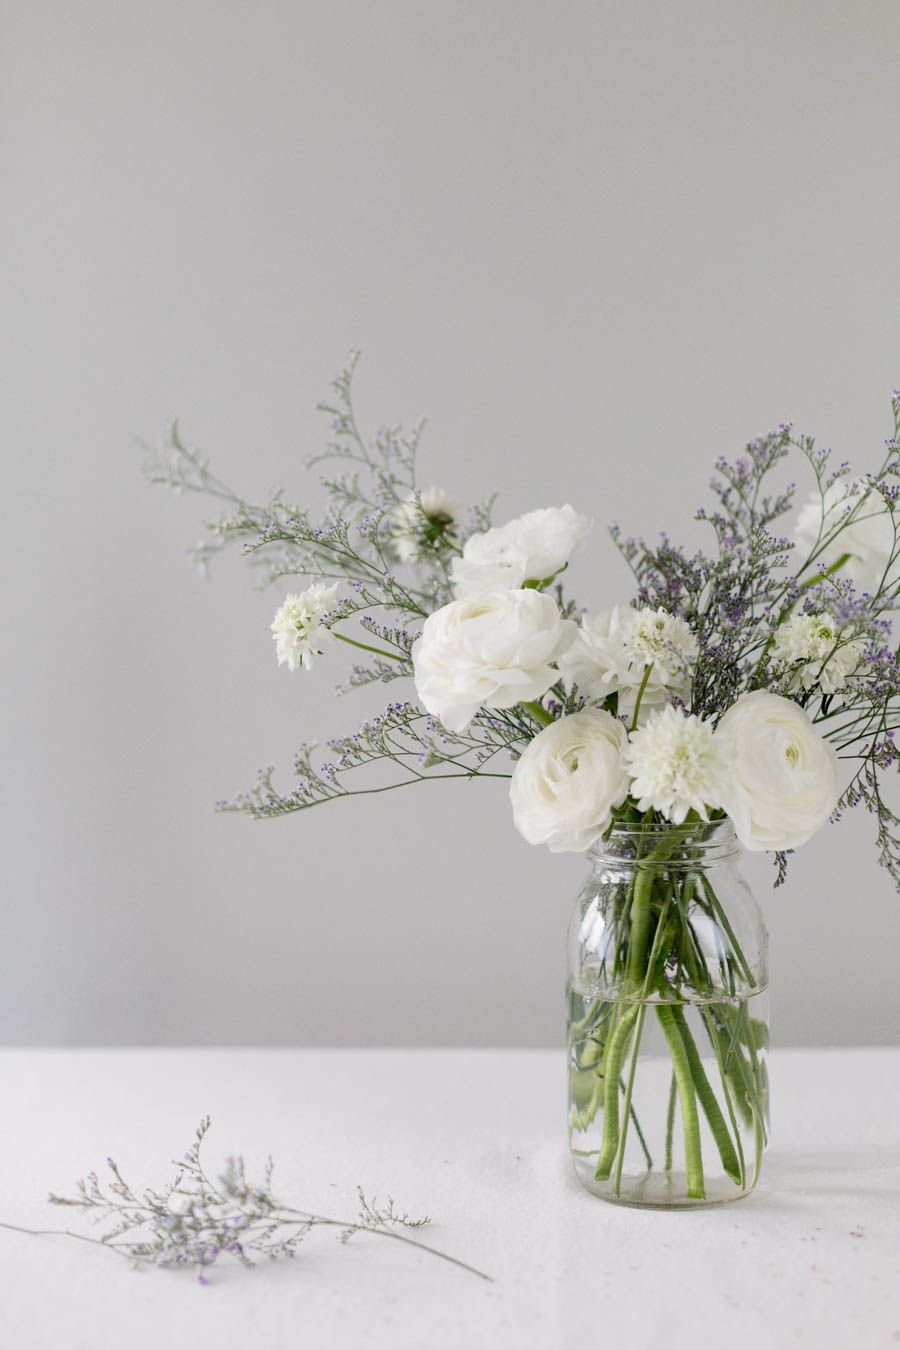 21 fresh cut spring flower arrangements and bouquets easter diy 21 fresh cut spring flower arrangments and bouquets a trendy blog for moms mom blogger mightylinksfo